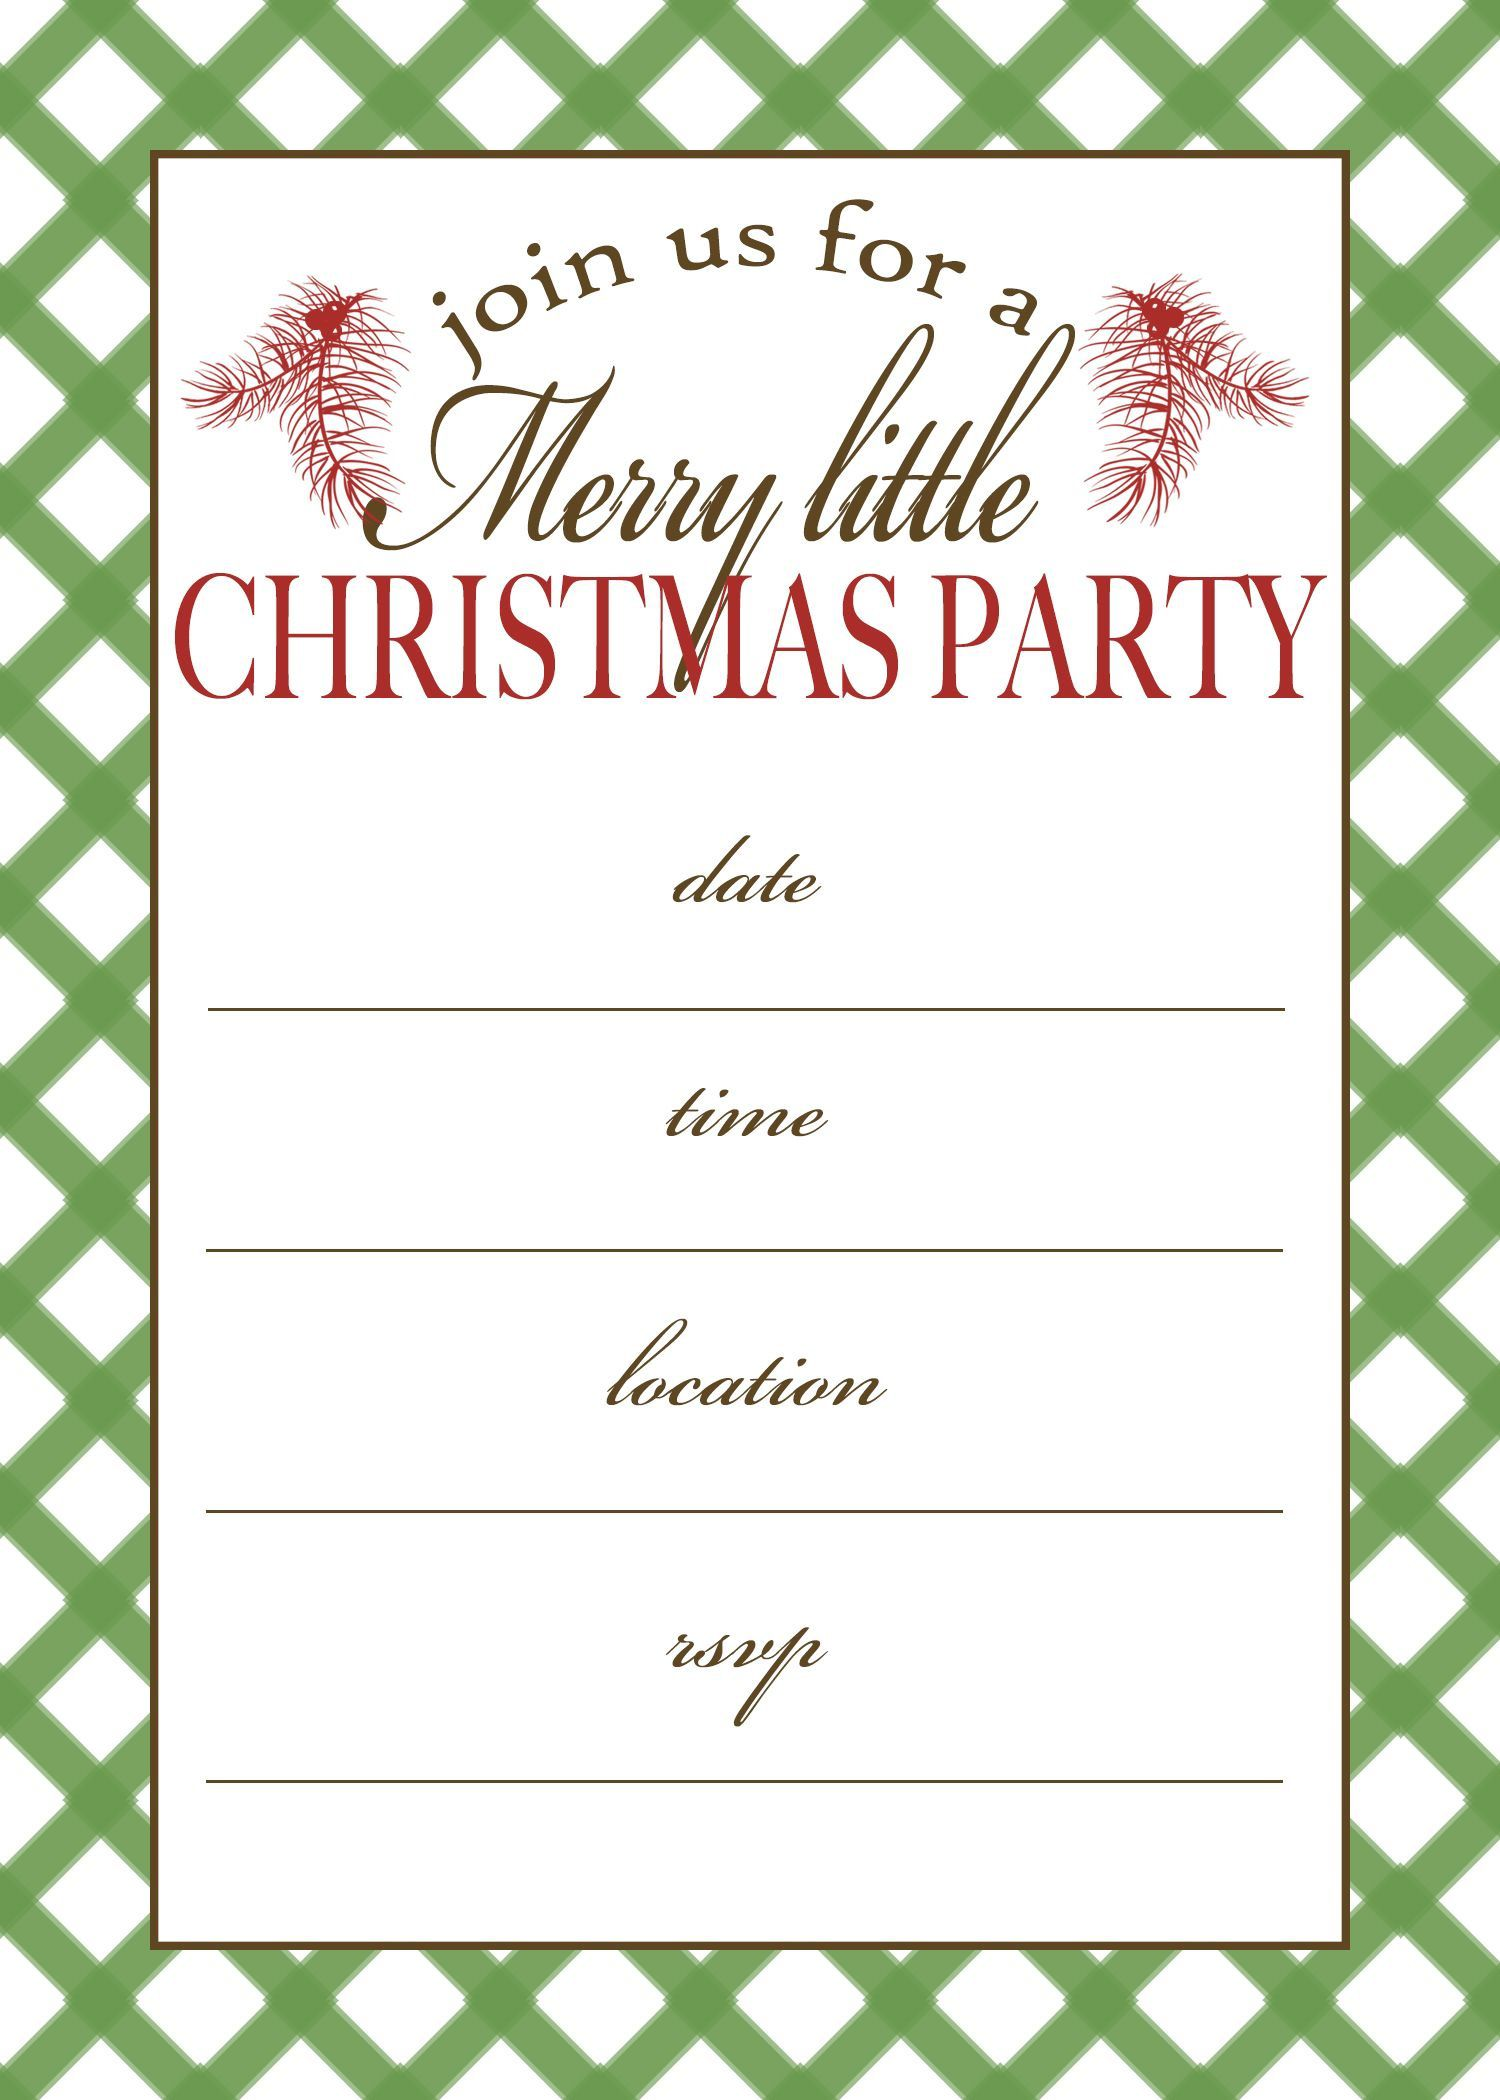 001 Incredible Christma Party Invitation Template Sample  Funny Free Download Word CardFull